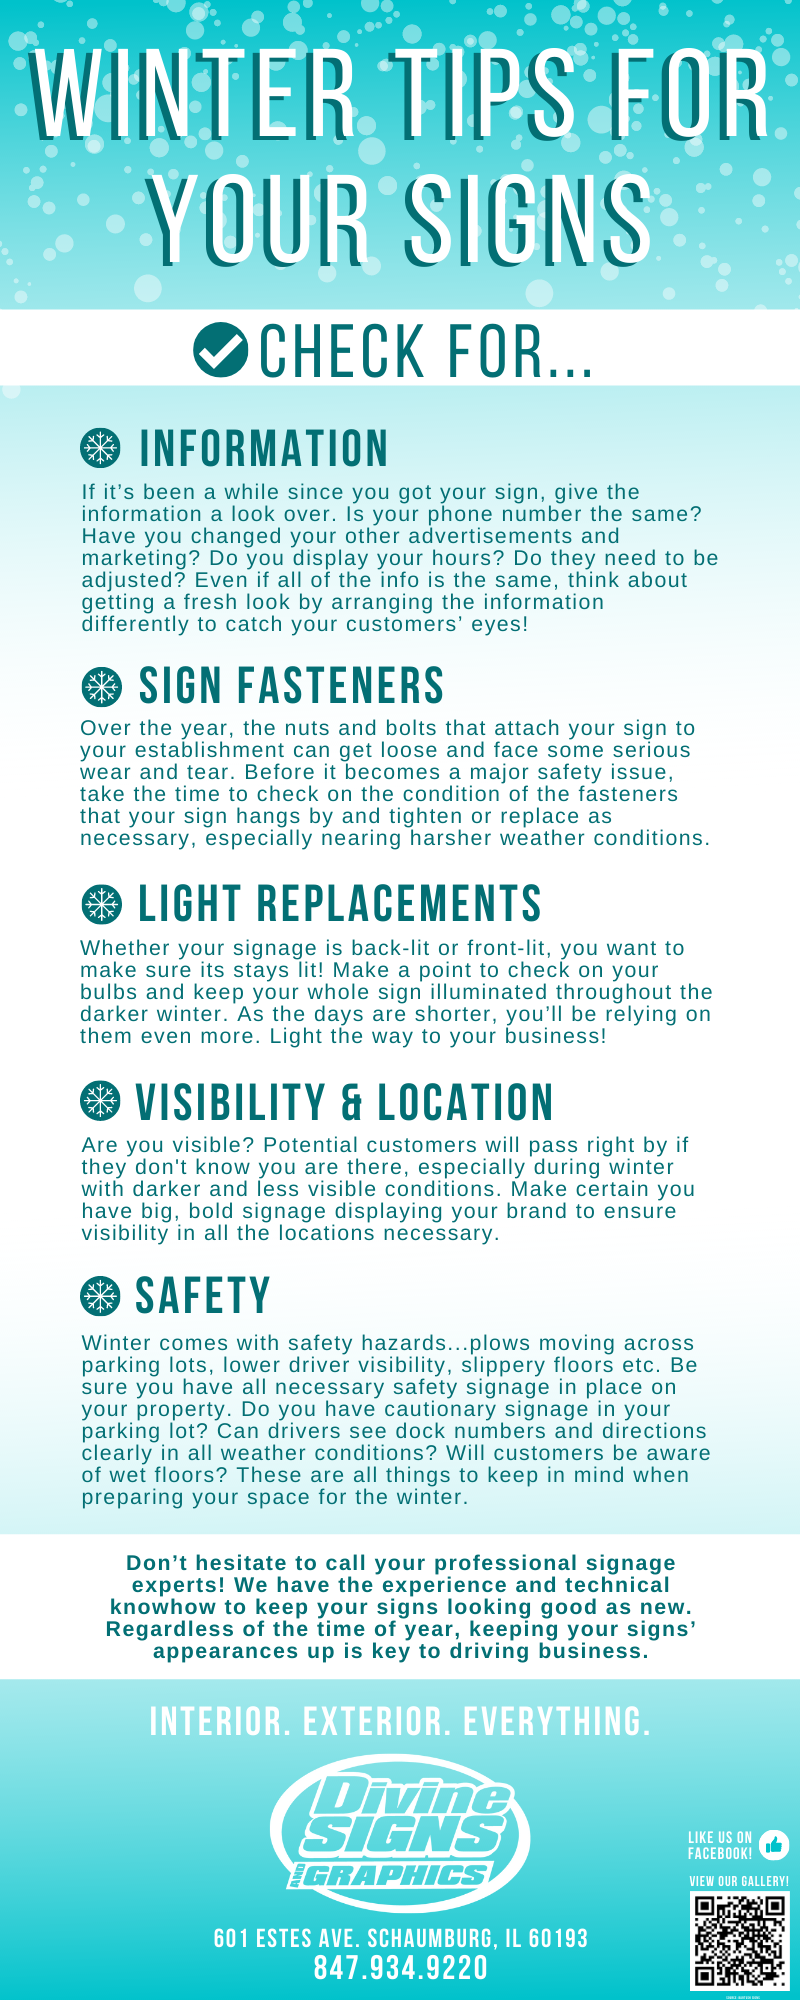 WINTER TIPS FOR YOUR SIGNS